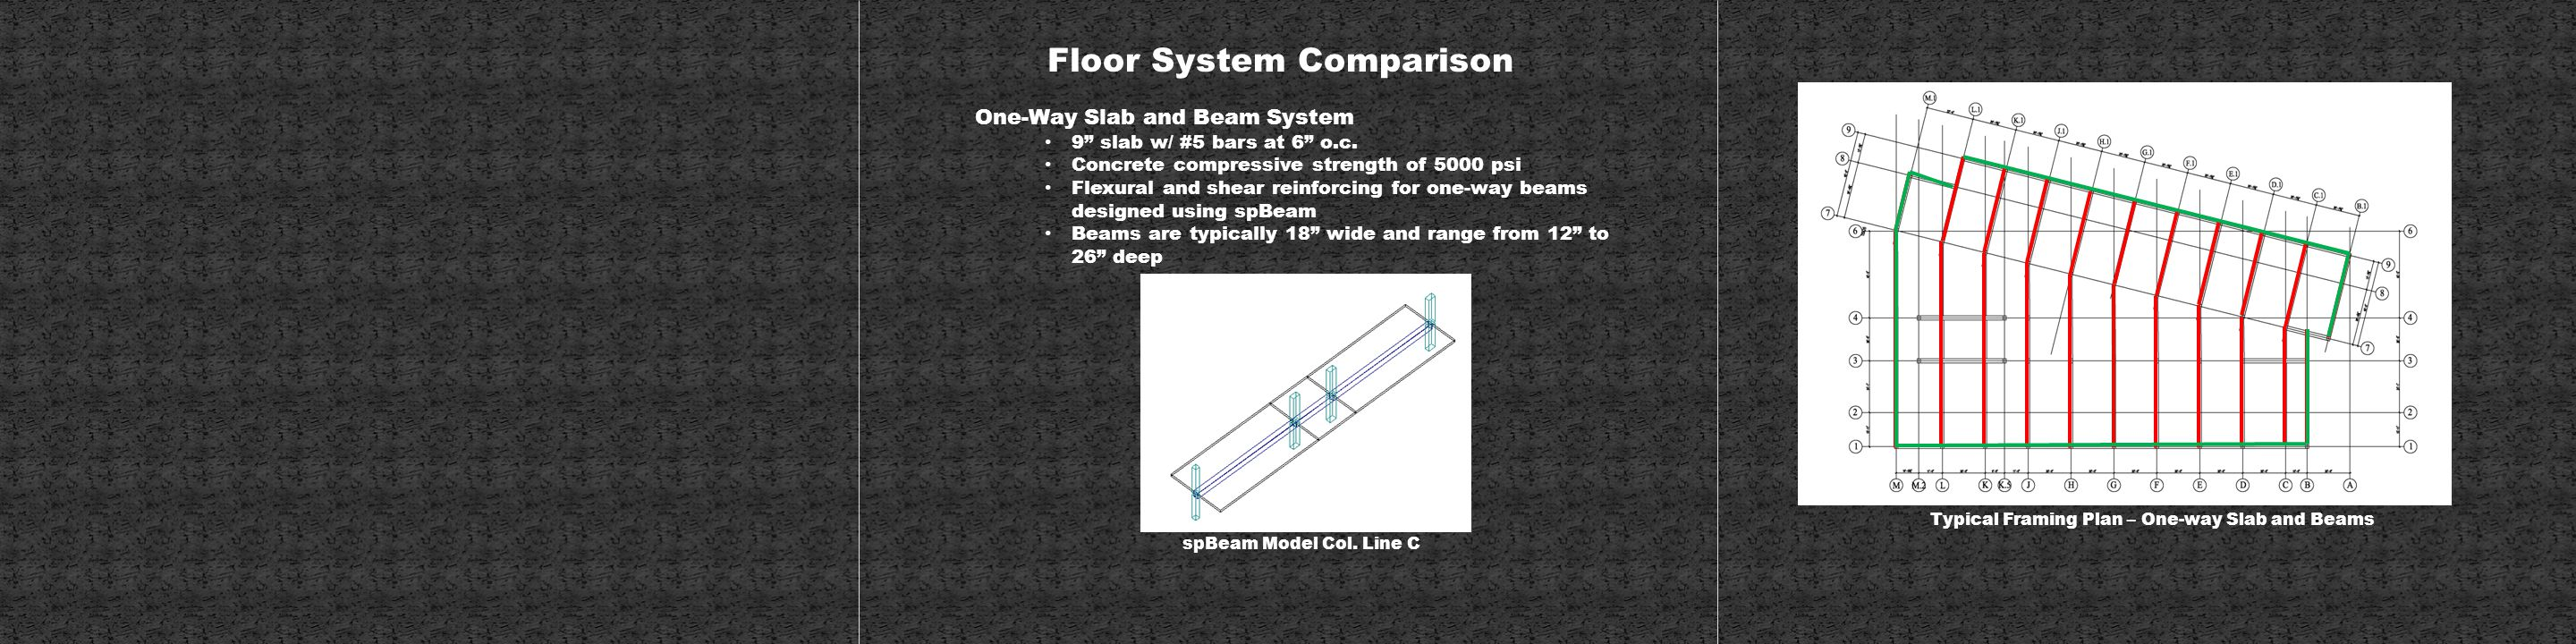 Floor System Comparison One-Way Slab and Beam System 9 slab w/ #5 bars at 6 o.c.